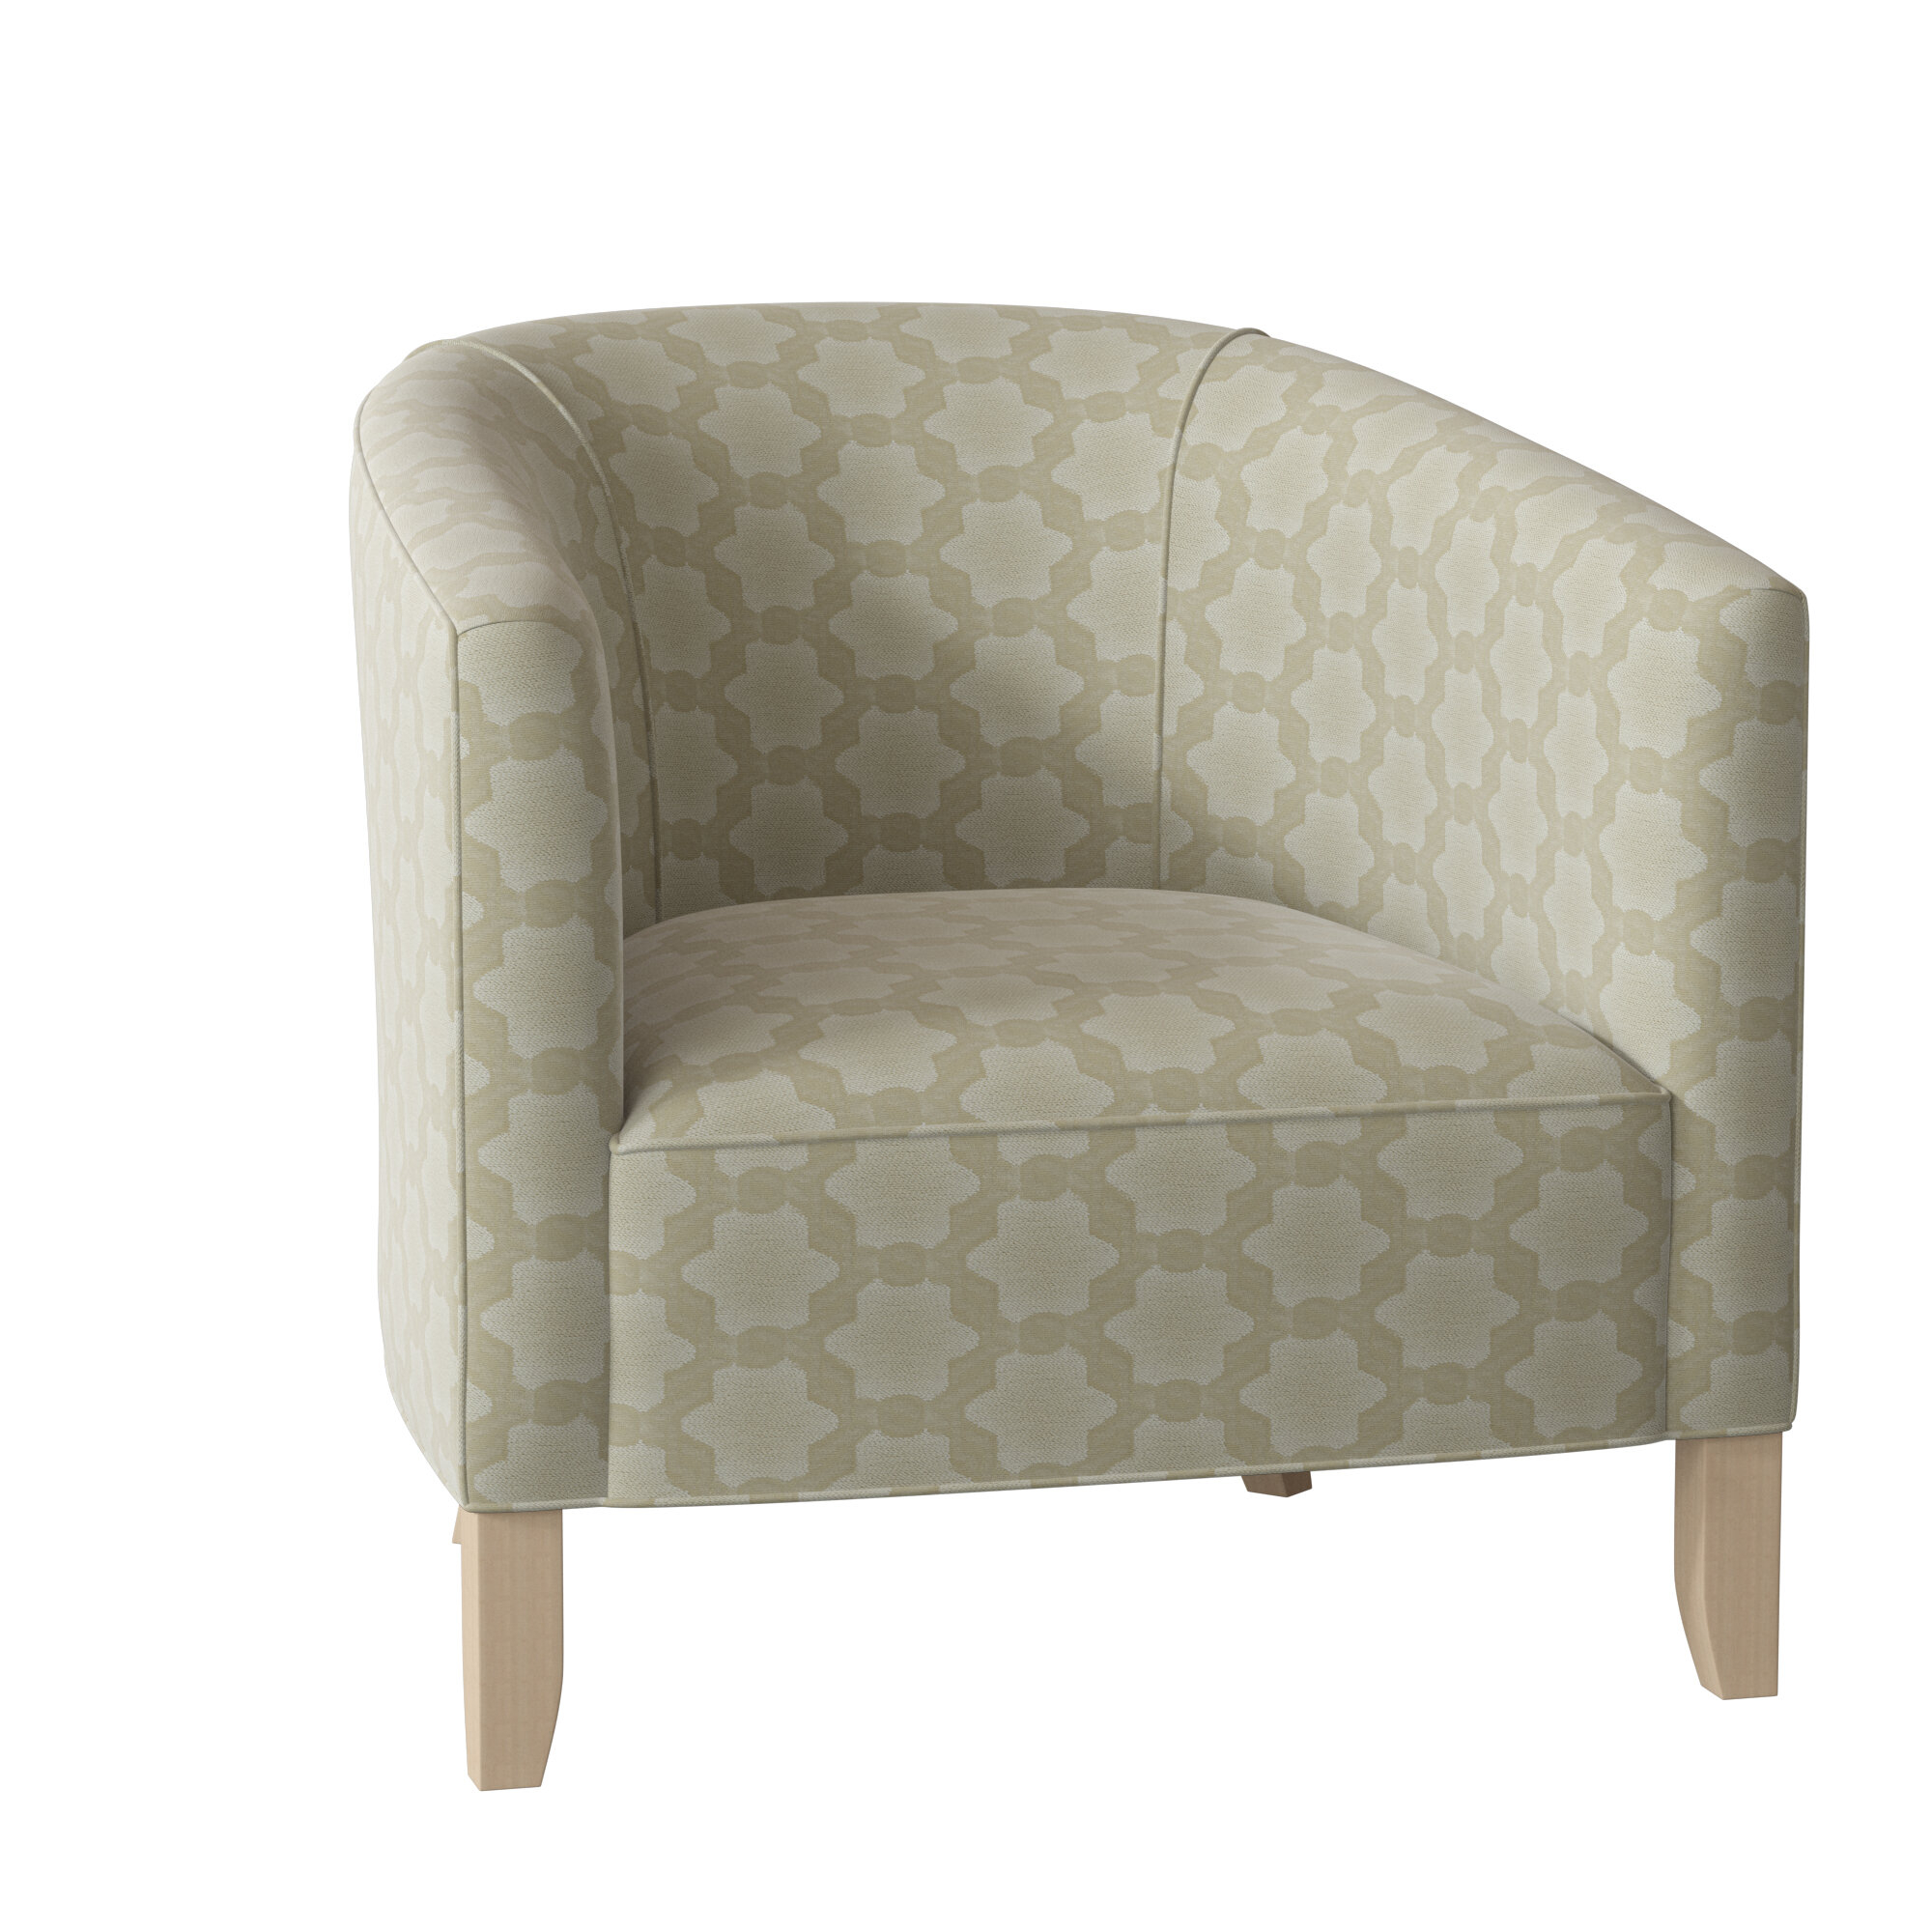 Barrel Yellow Accent Chairs You'Ll Love In 2021 | Wayfair Regarding Dorcaster Barrel Chairs (View 8 of 15)